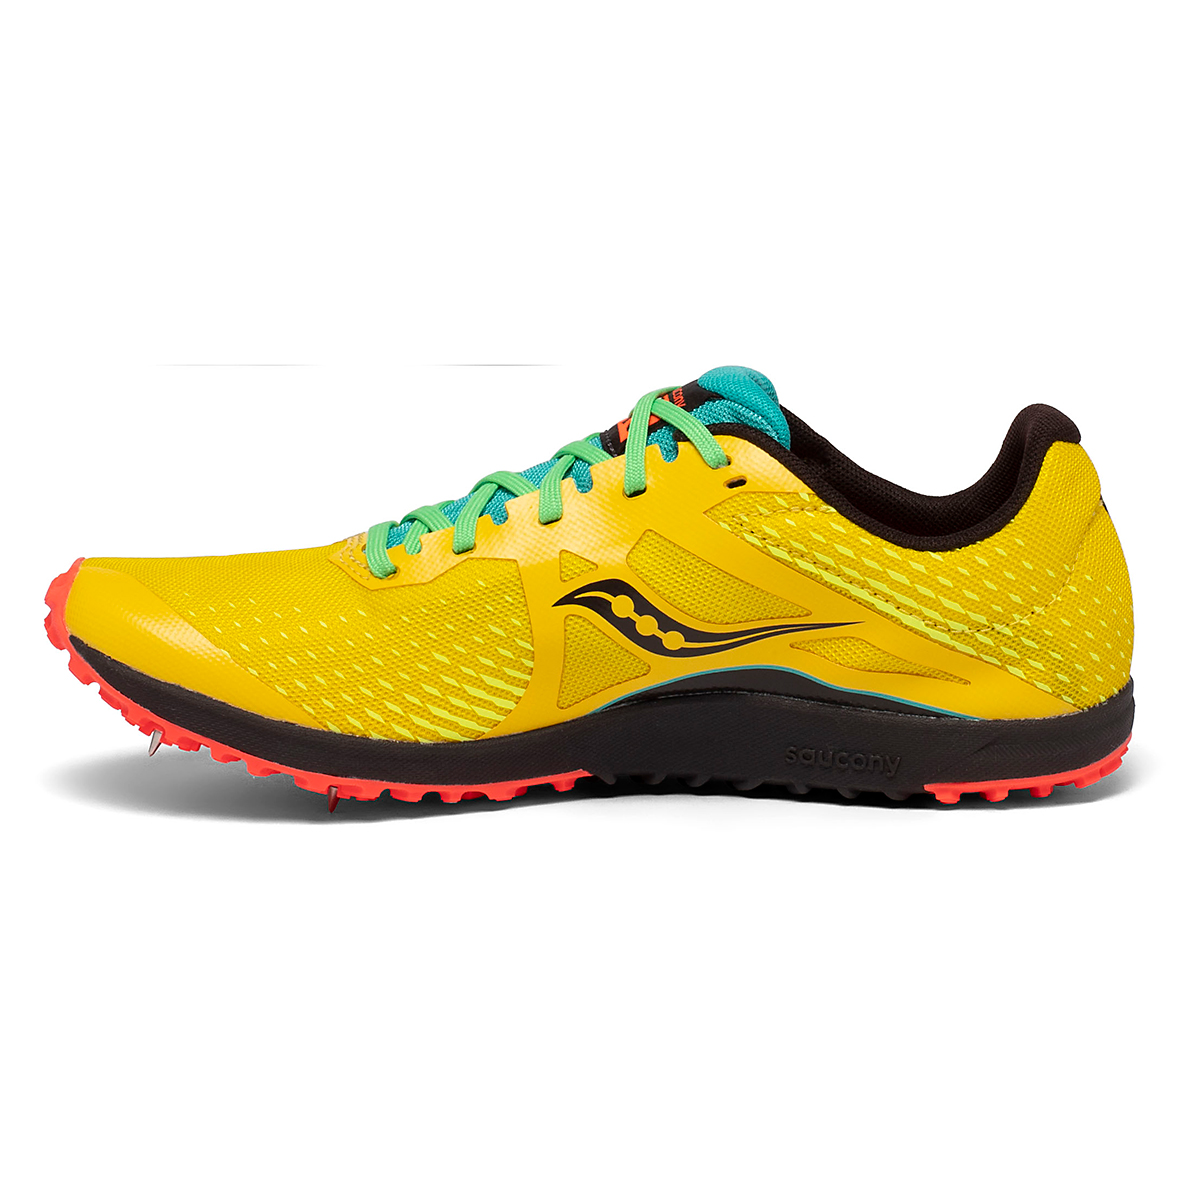 Men's Saucony Kilkenny XC8 Track Spikes - Color: Yellow Mutant - Size: 8 - Width: Regular, Yellow Mutant, large, image 2